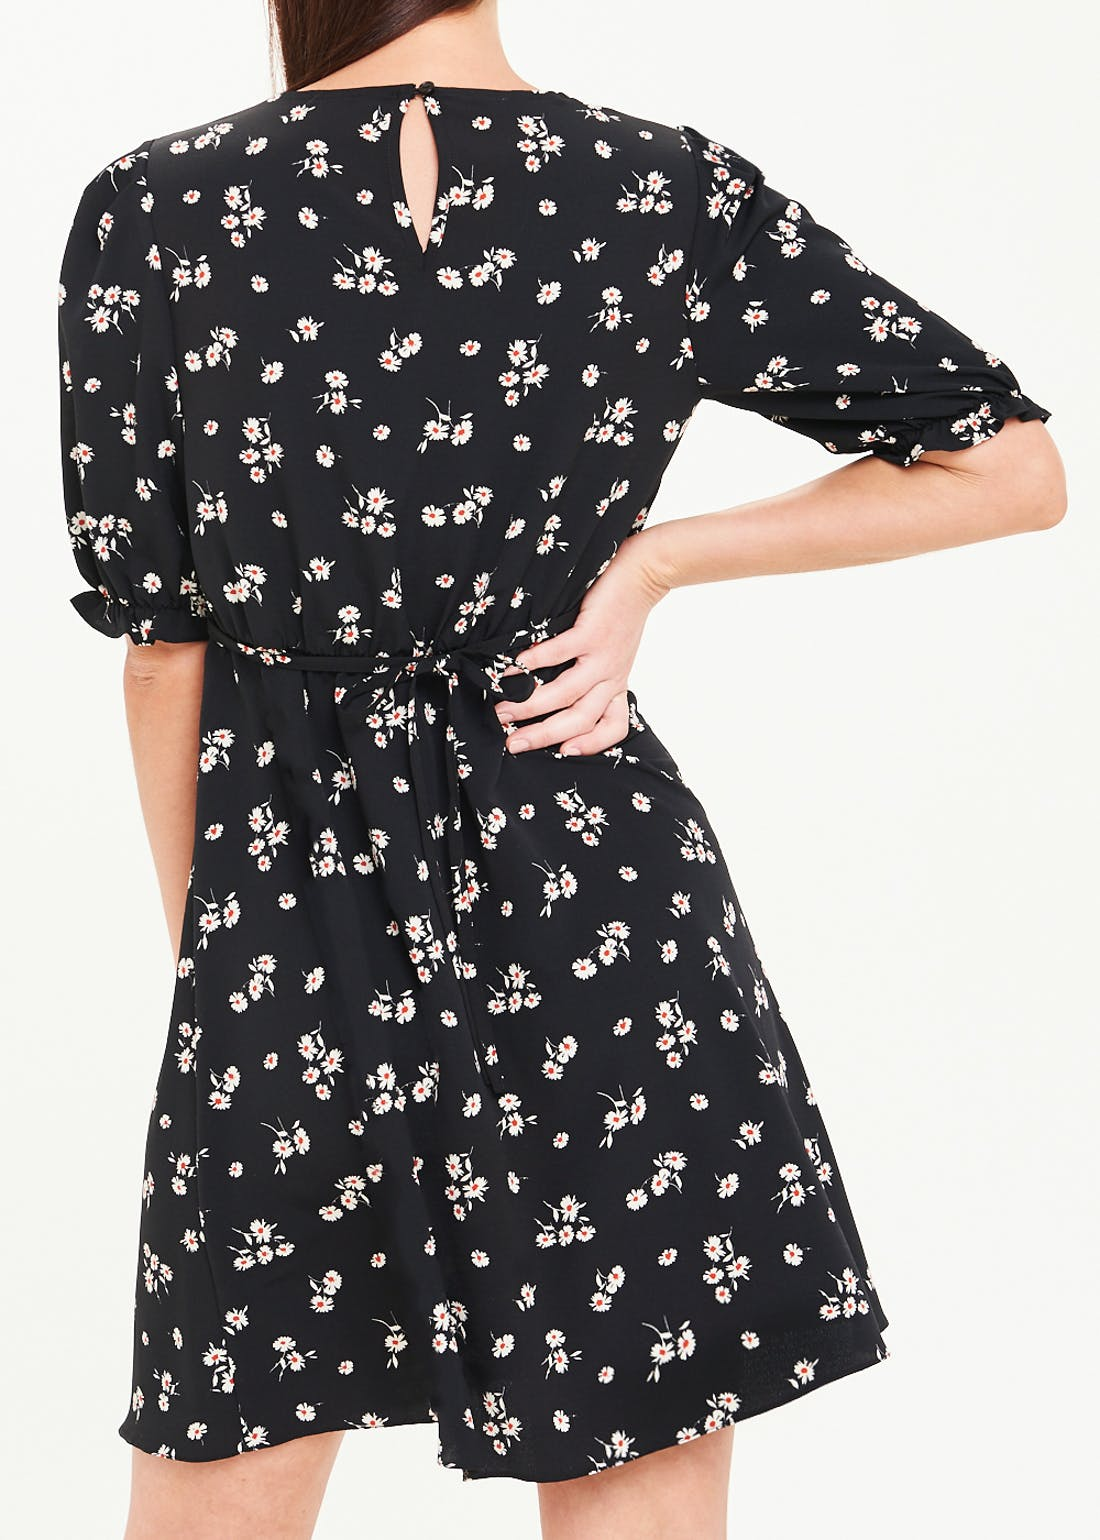 Black Puff Sleeve Floral Dress